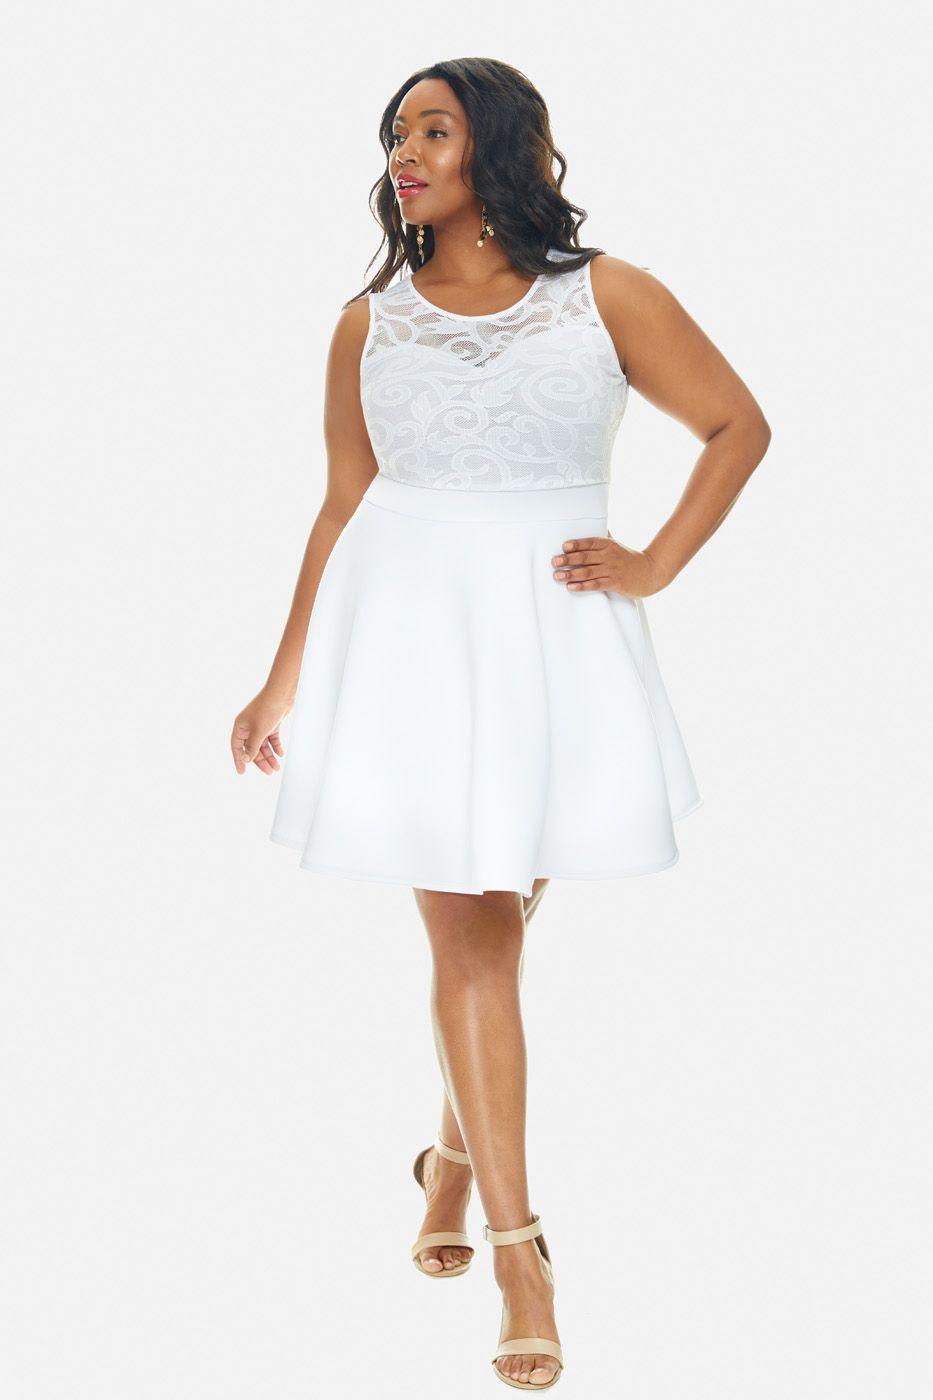 Plus Size Allie Mesh Bodice Fit And Flare Dress Fit And Flare Dress Fashion To Figure Dresses [ 1400 x 933 Pixel ]